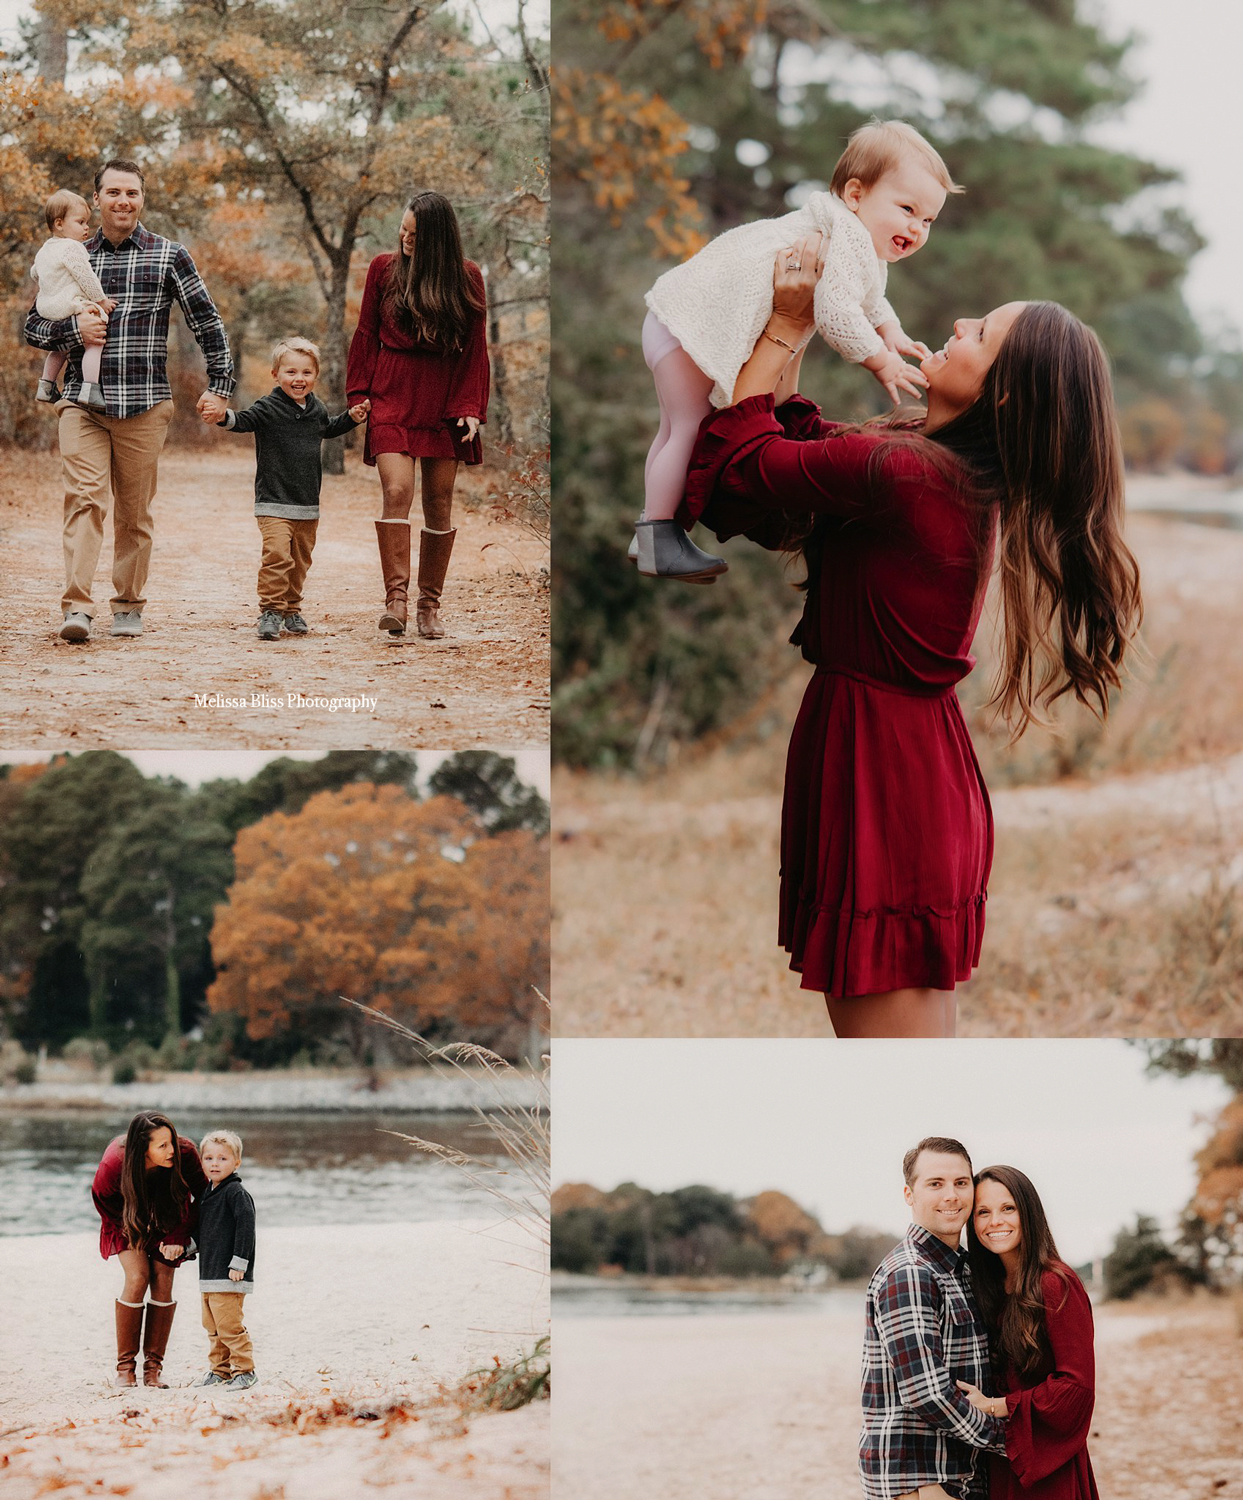 family-lifestyle-session-for-family-of-four-at-first-landing-state-park-by-melissa-bliss-photography-virginia-beach-photographer.jpg